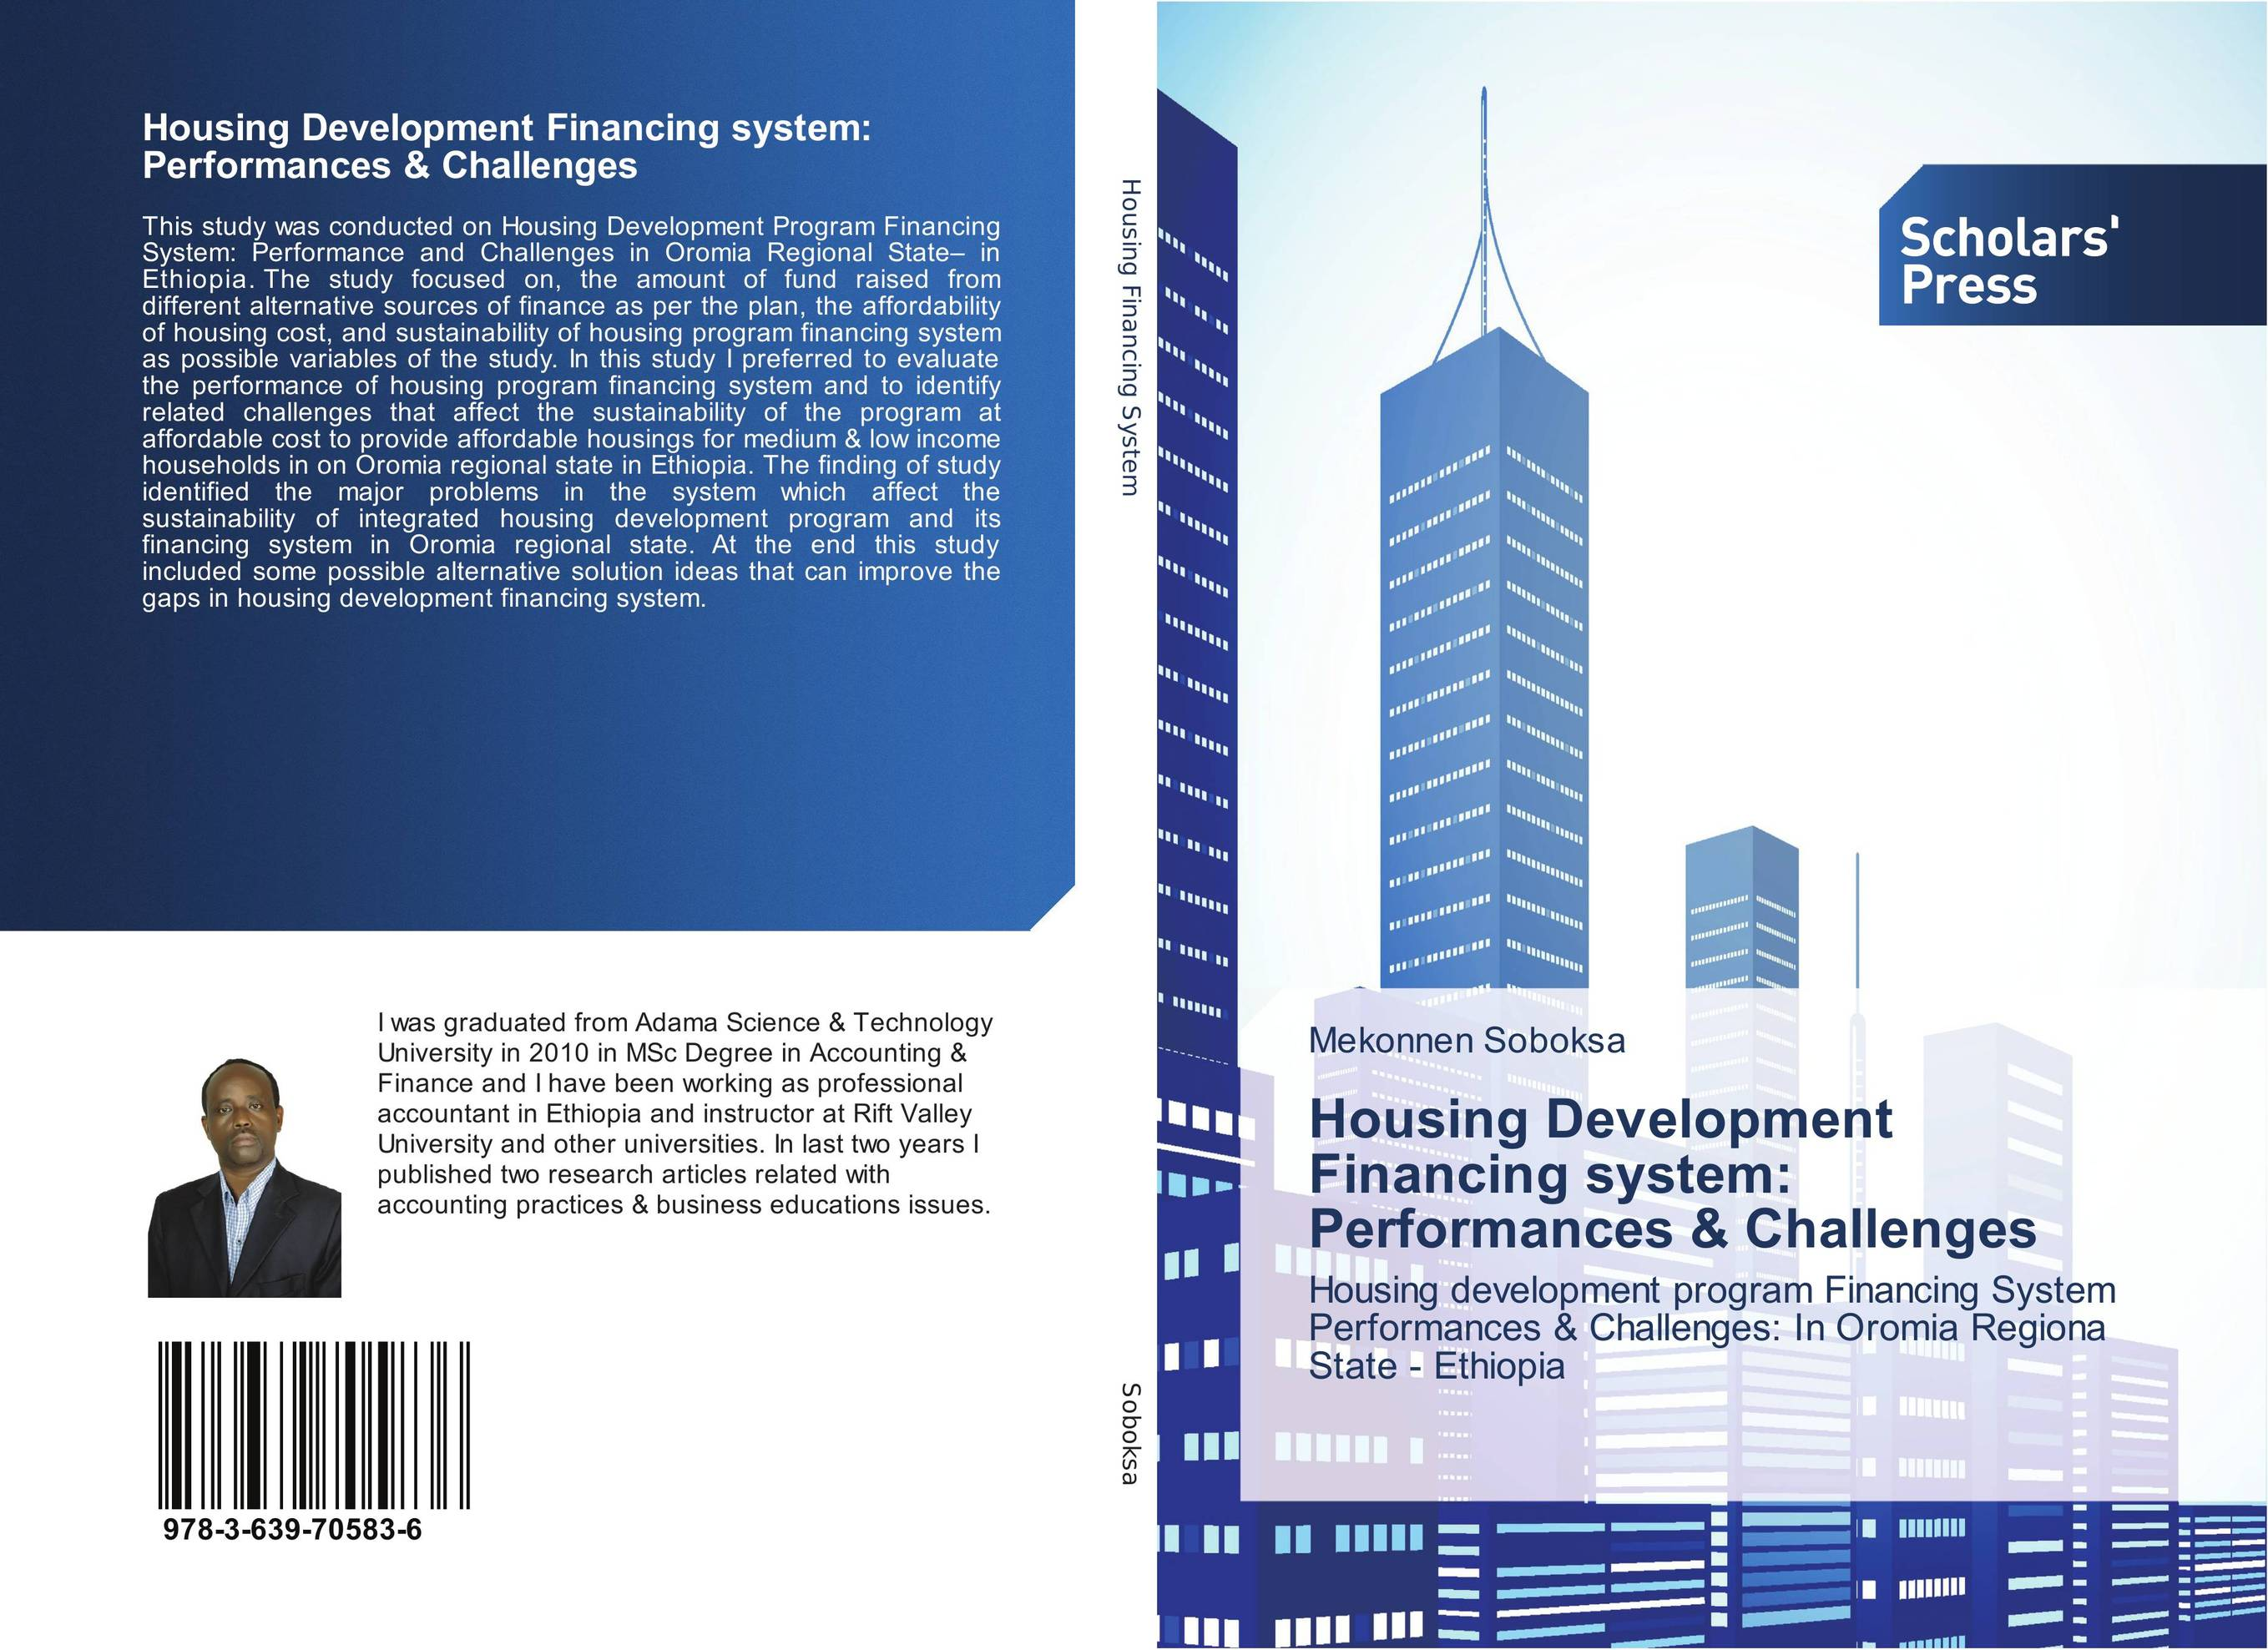 Housing Development Financing system: Performances & Challenges